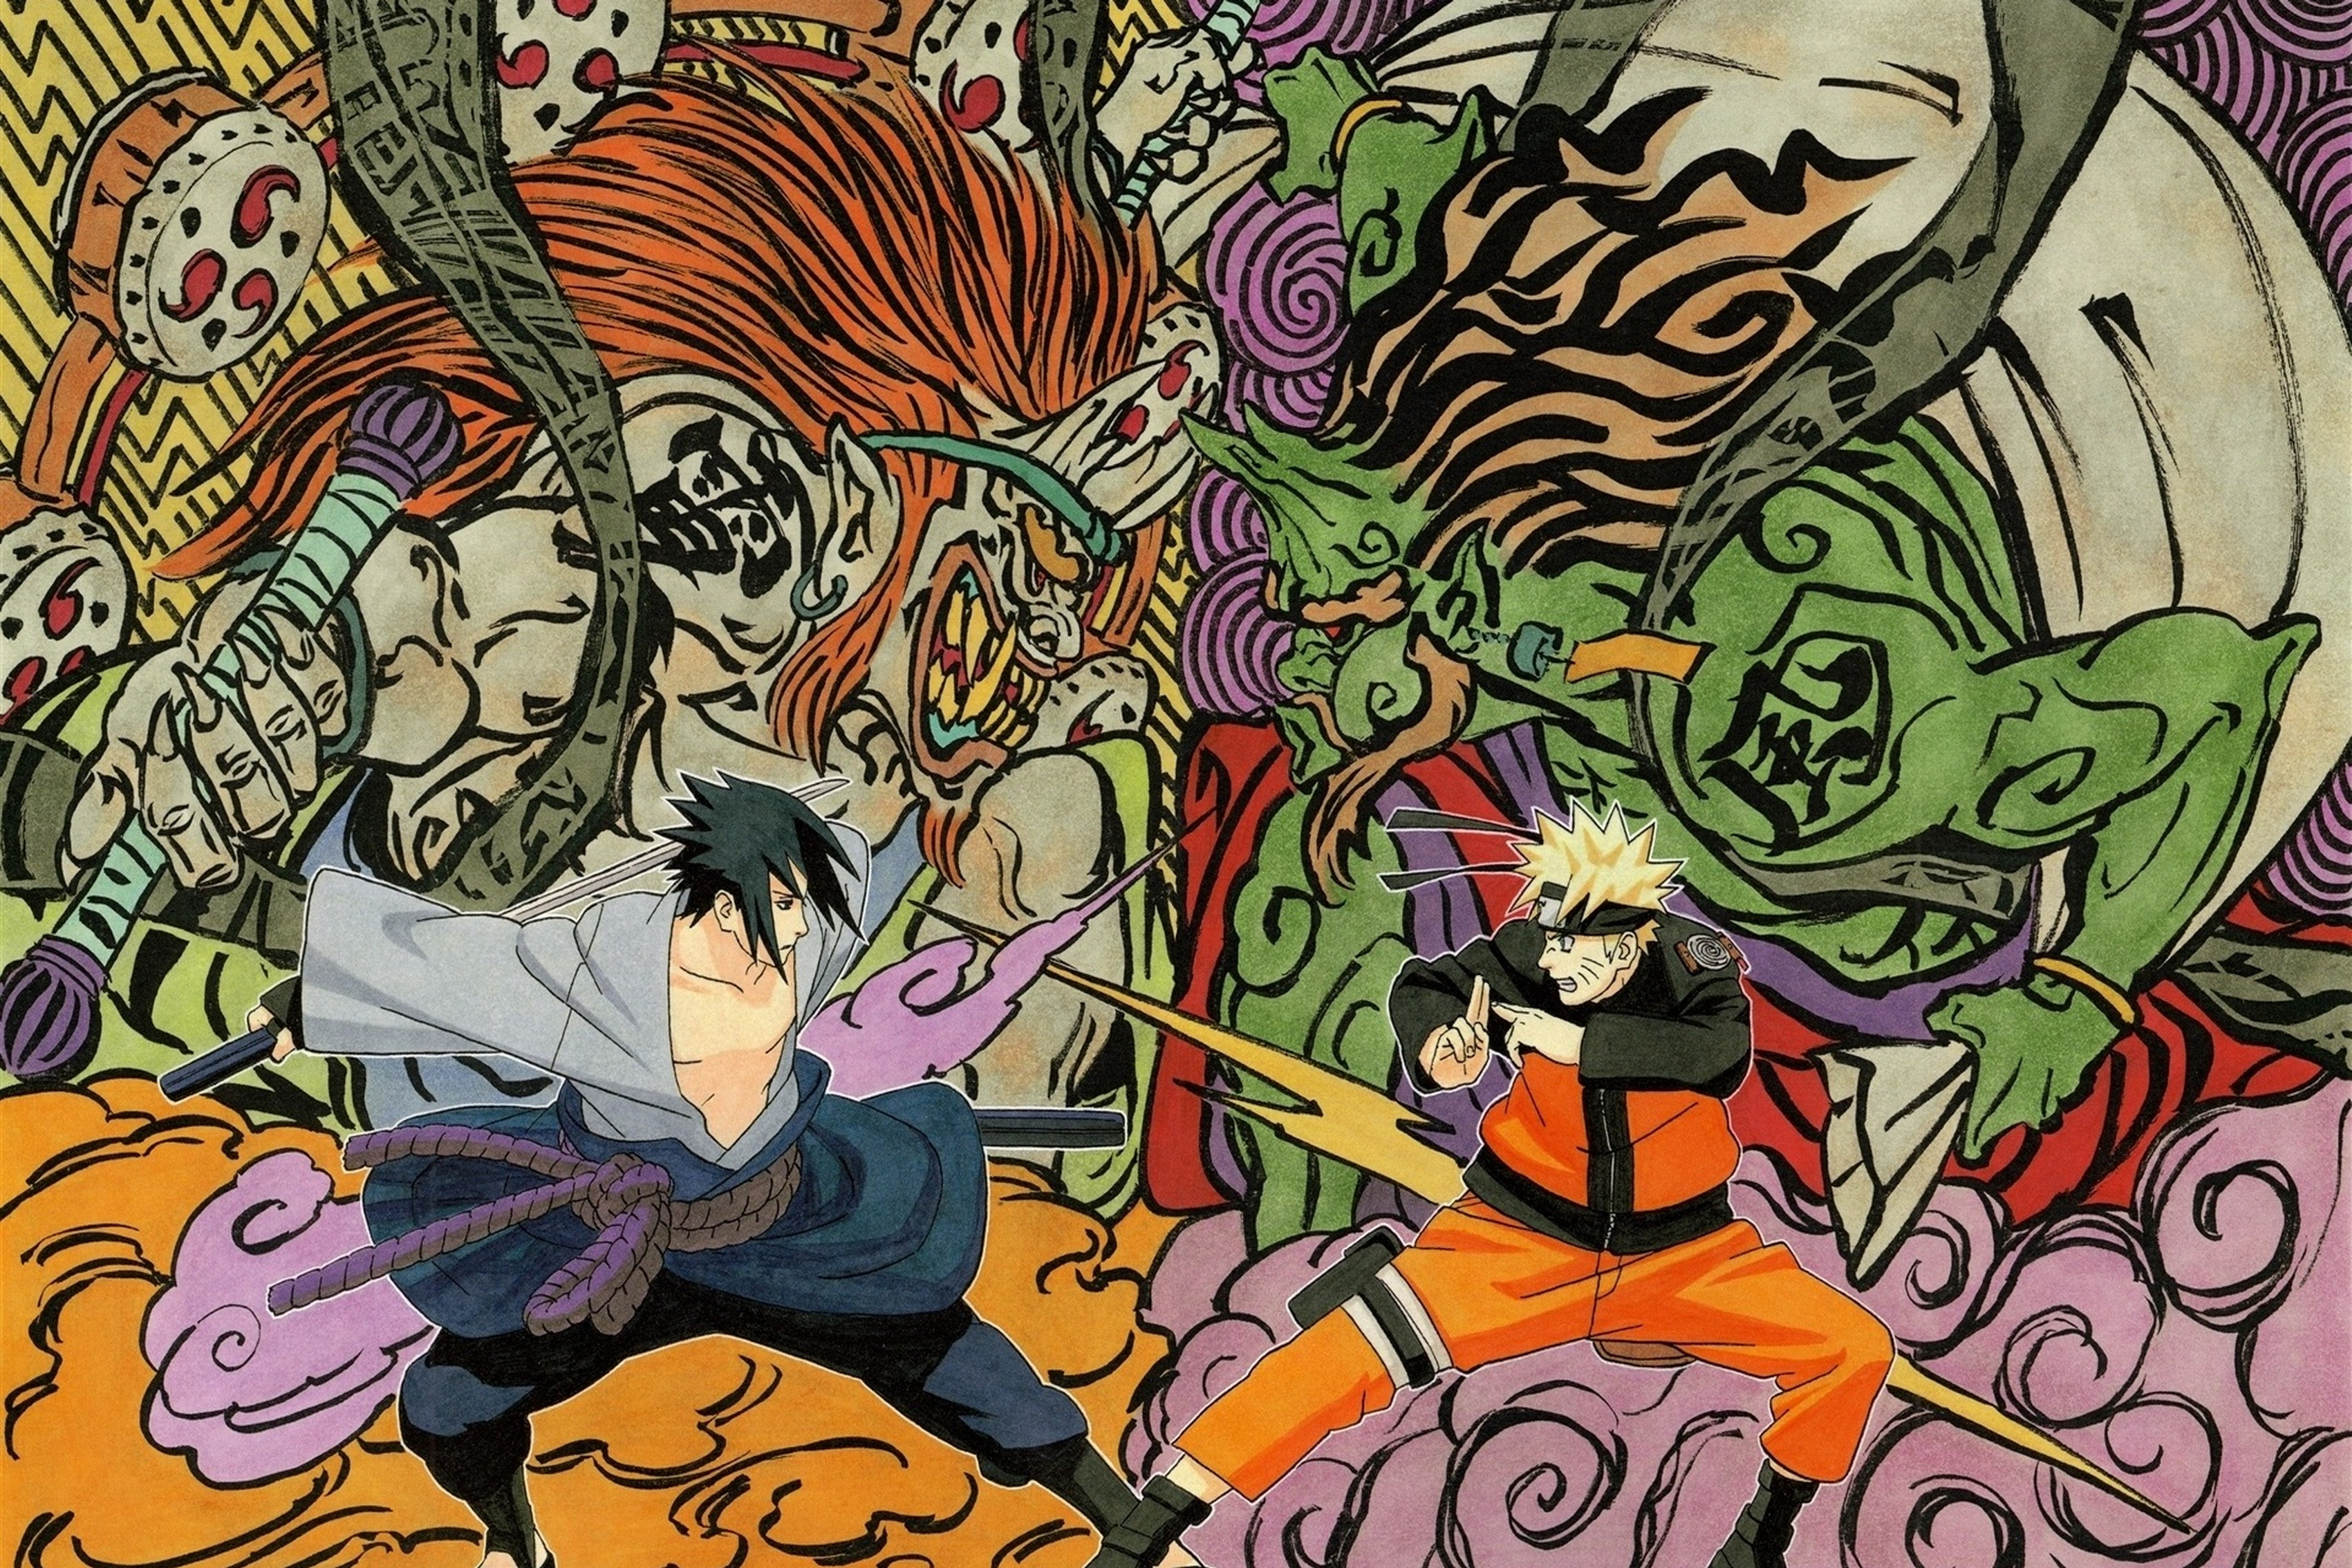 Naruto vs Sasuke art battle weapons Living room home art decor wood frame fabric poster(Accept customization)YR042